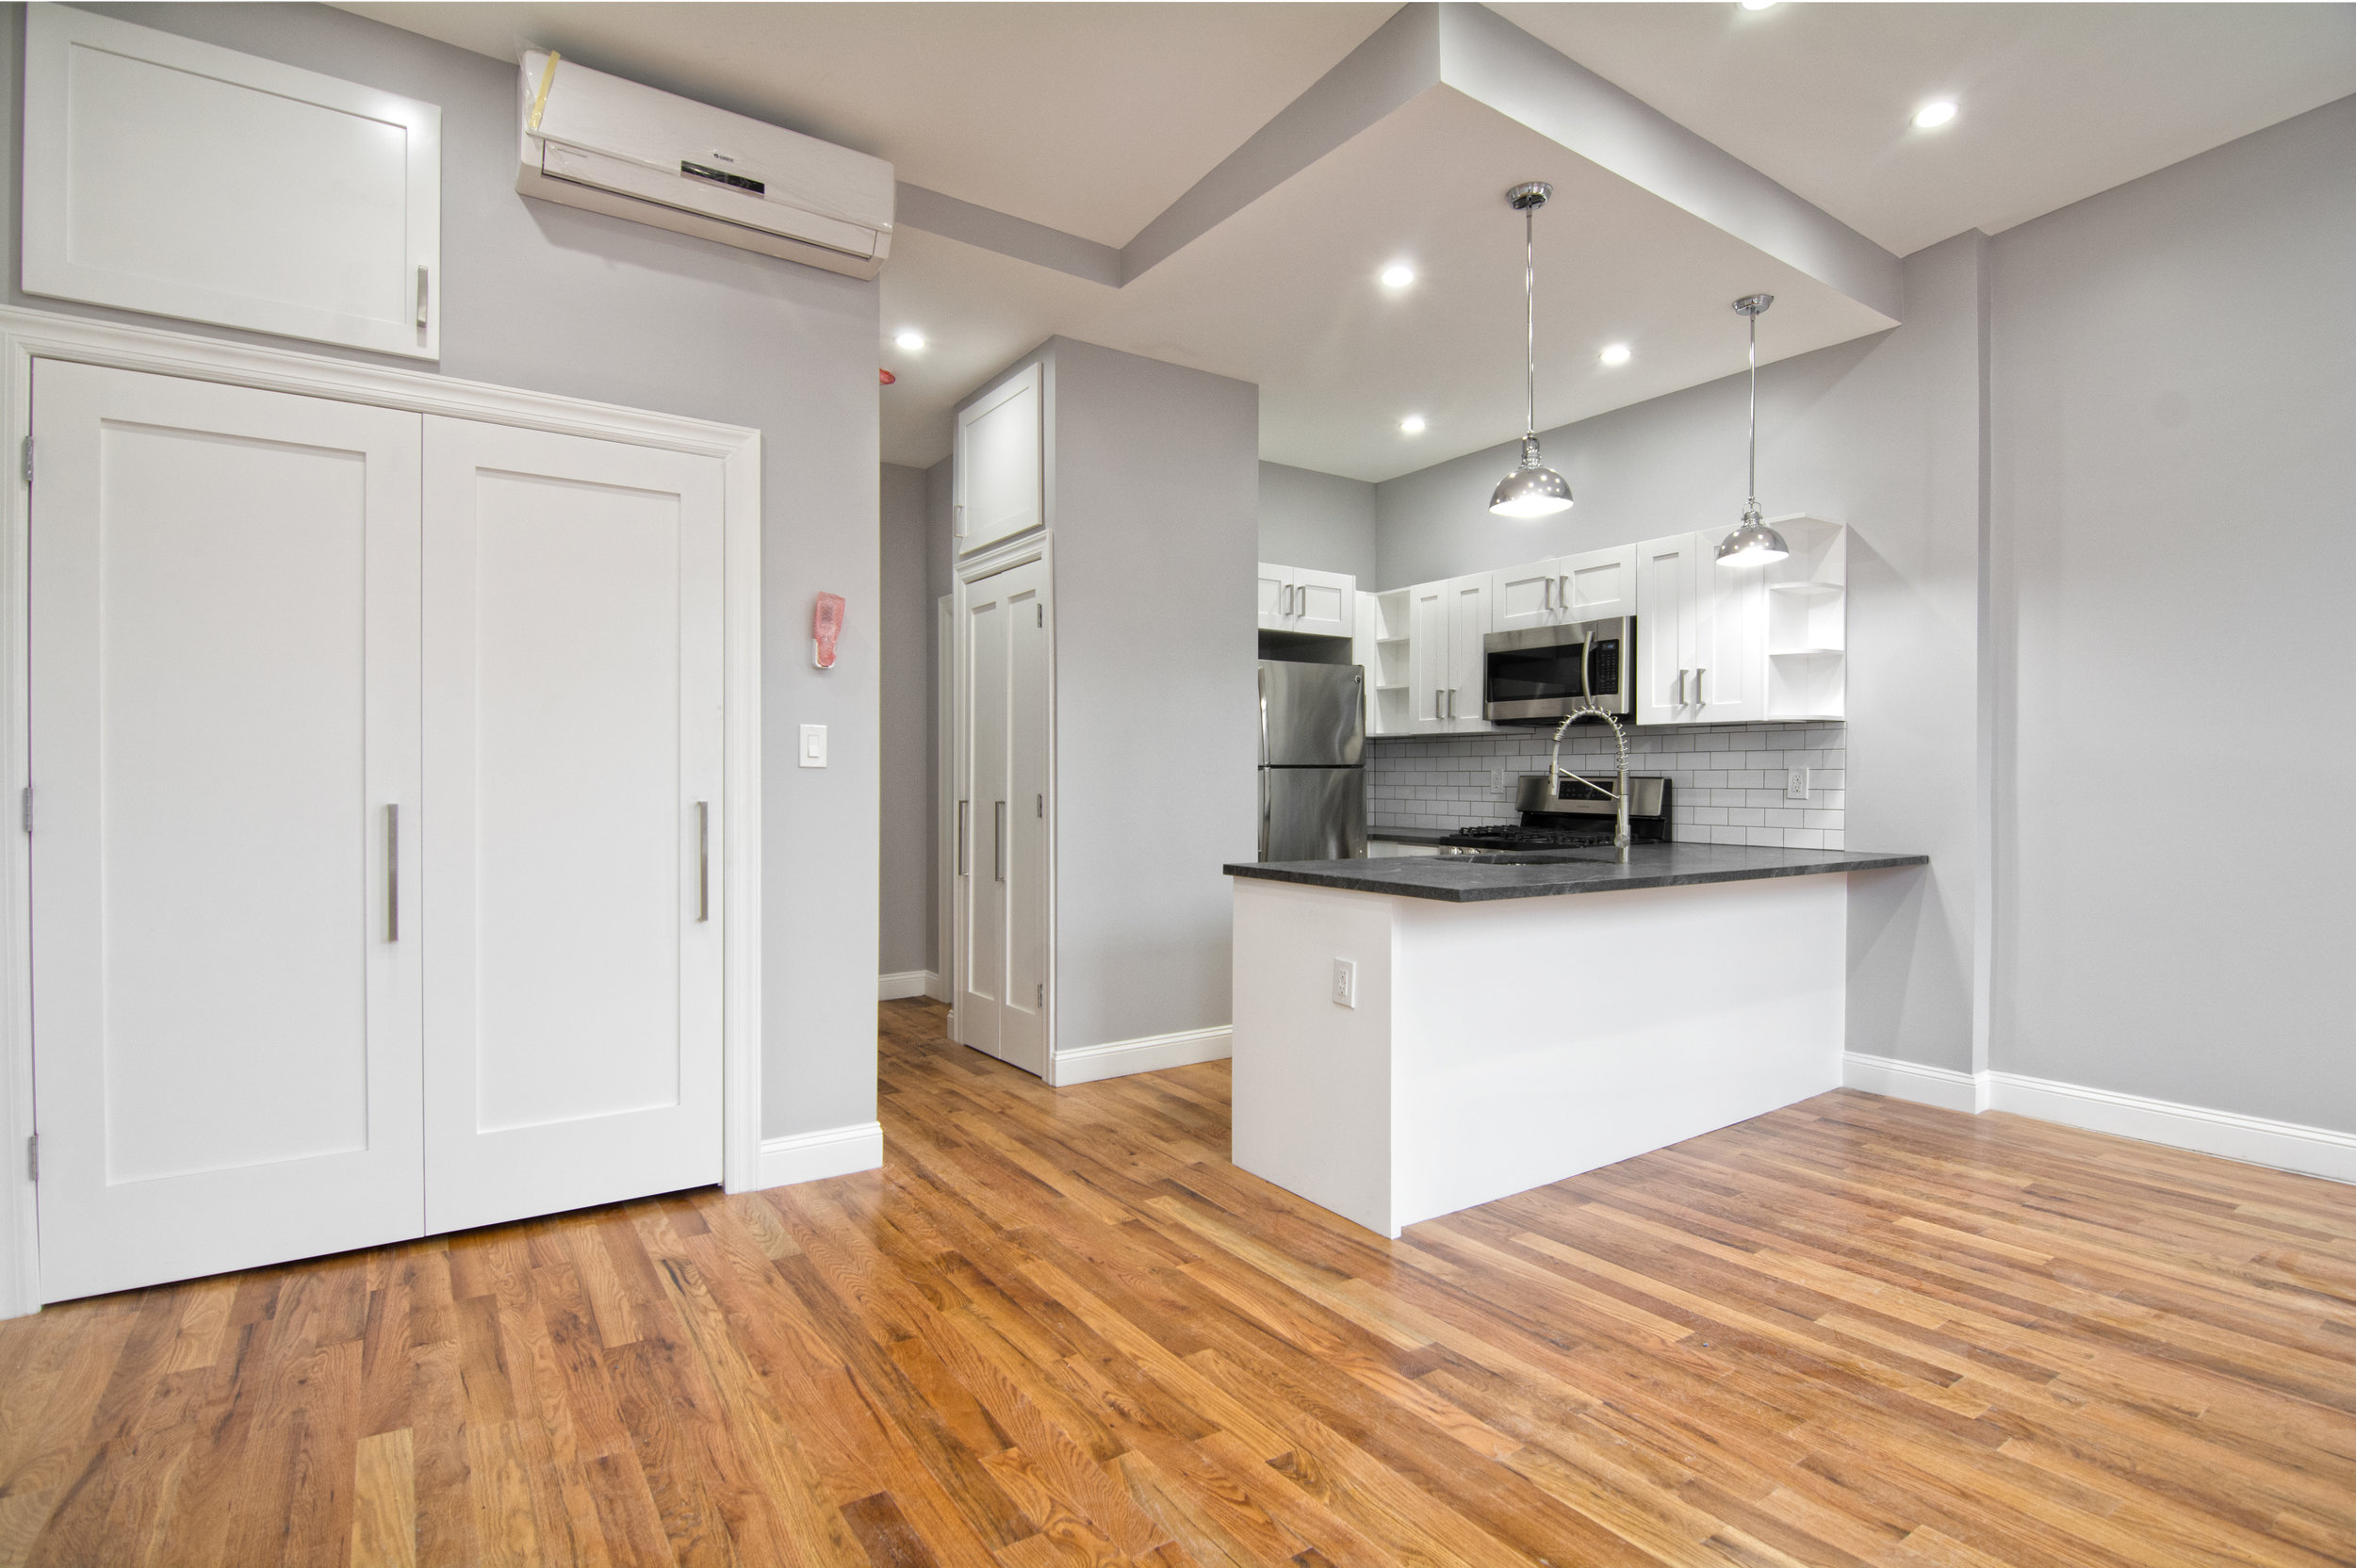 171 Adelphi Street Kitchen and Closet View.jpg